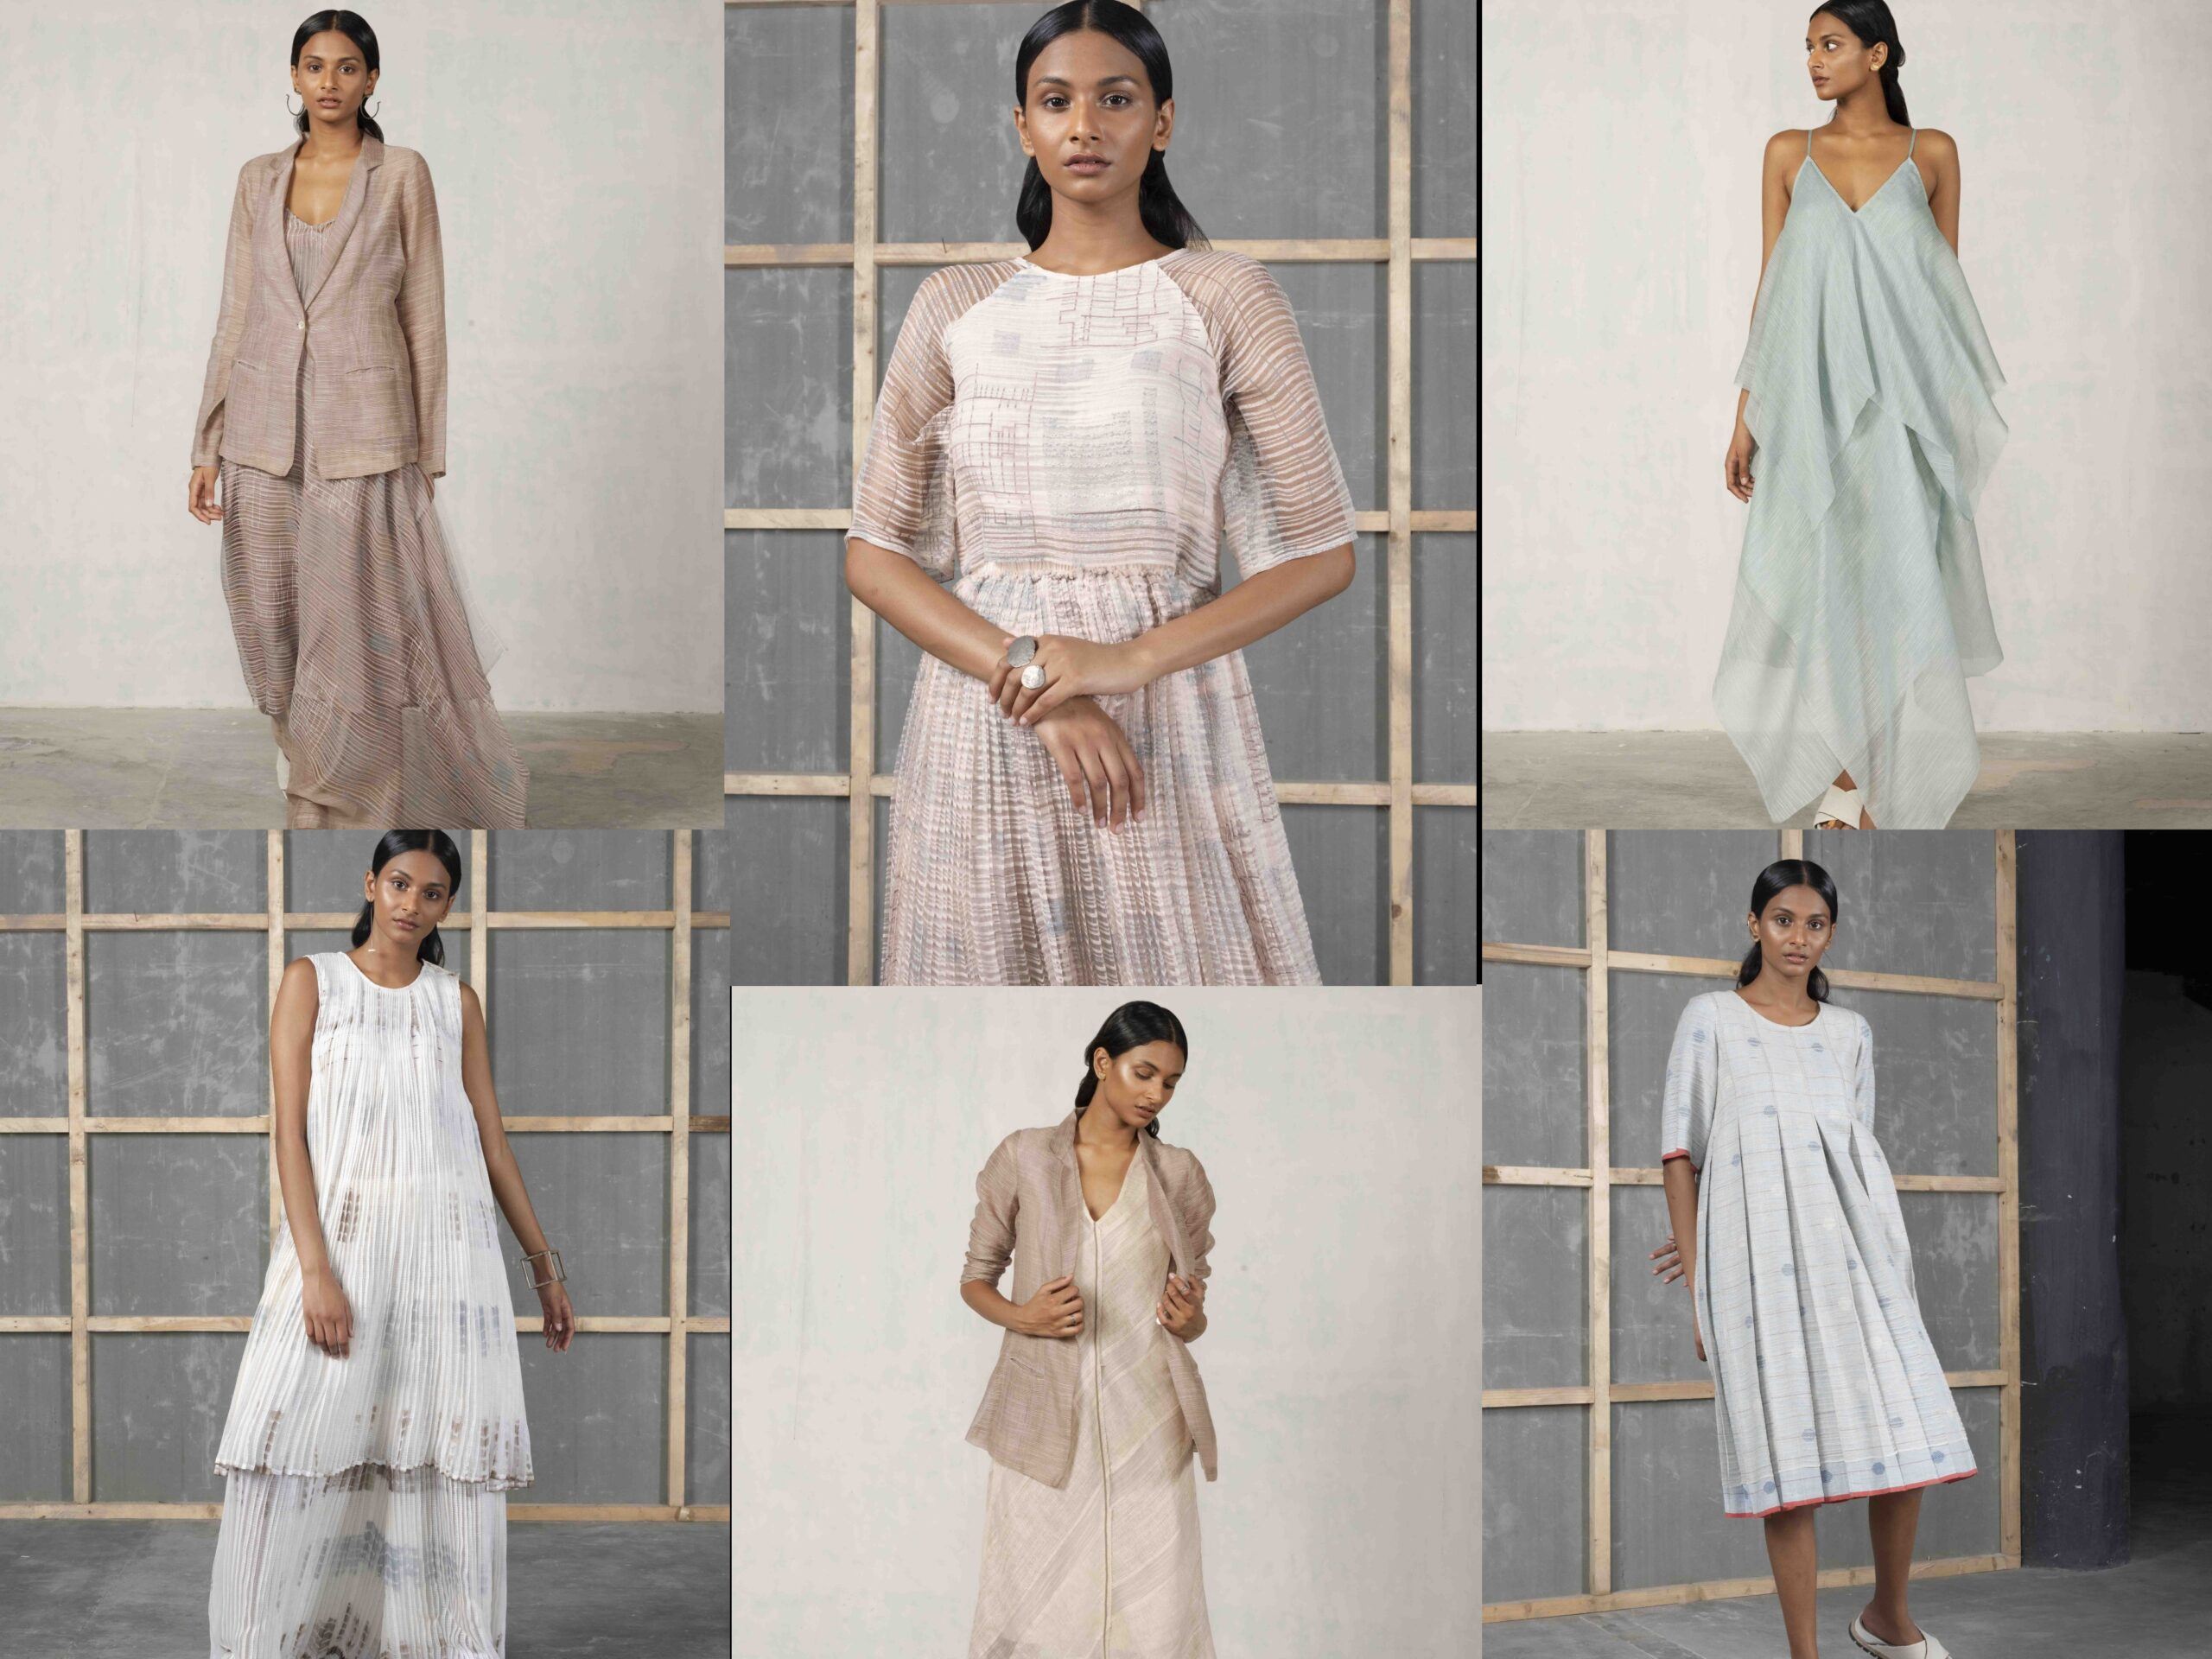 Urvashi Kaur's latest collection 'Vasara' from July 10th to 20th, 2021 at The Amethyst Room